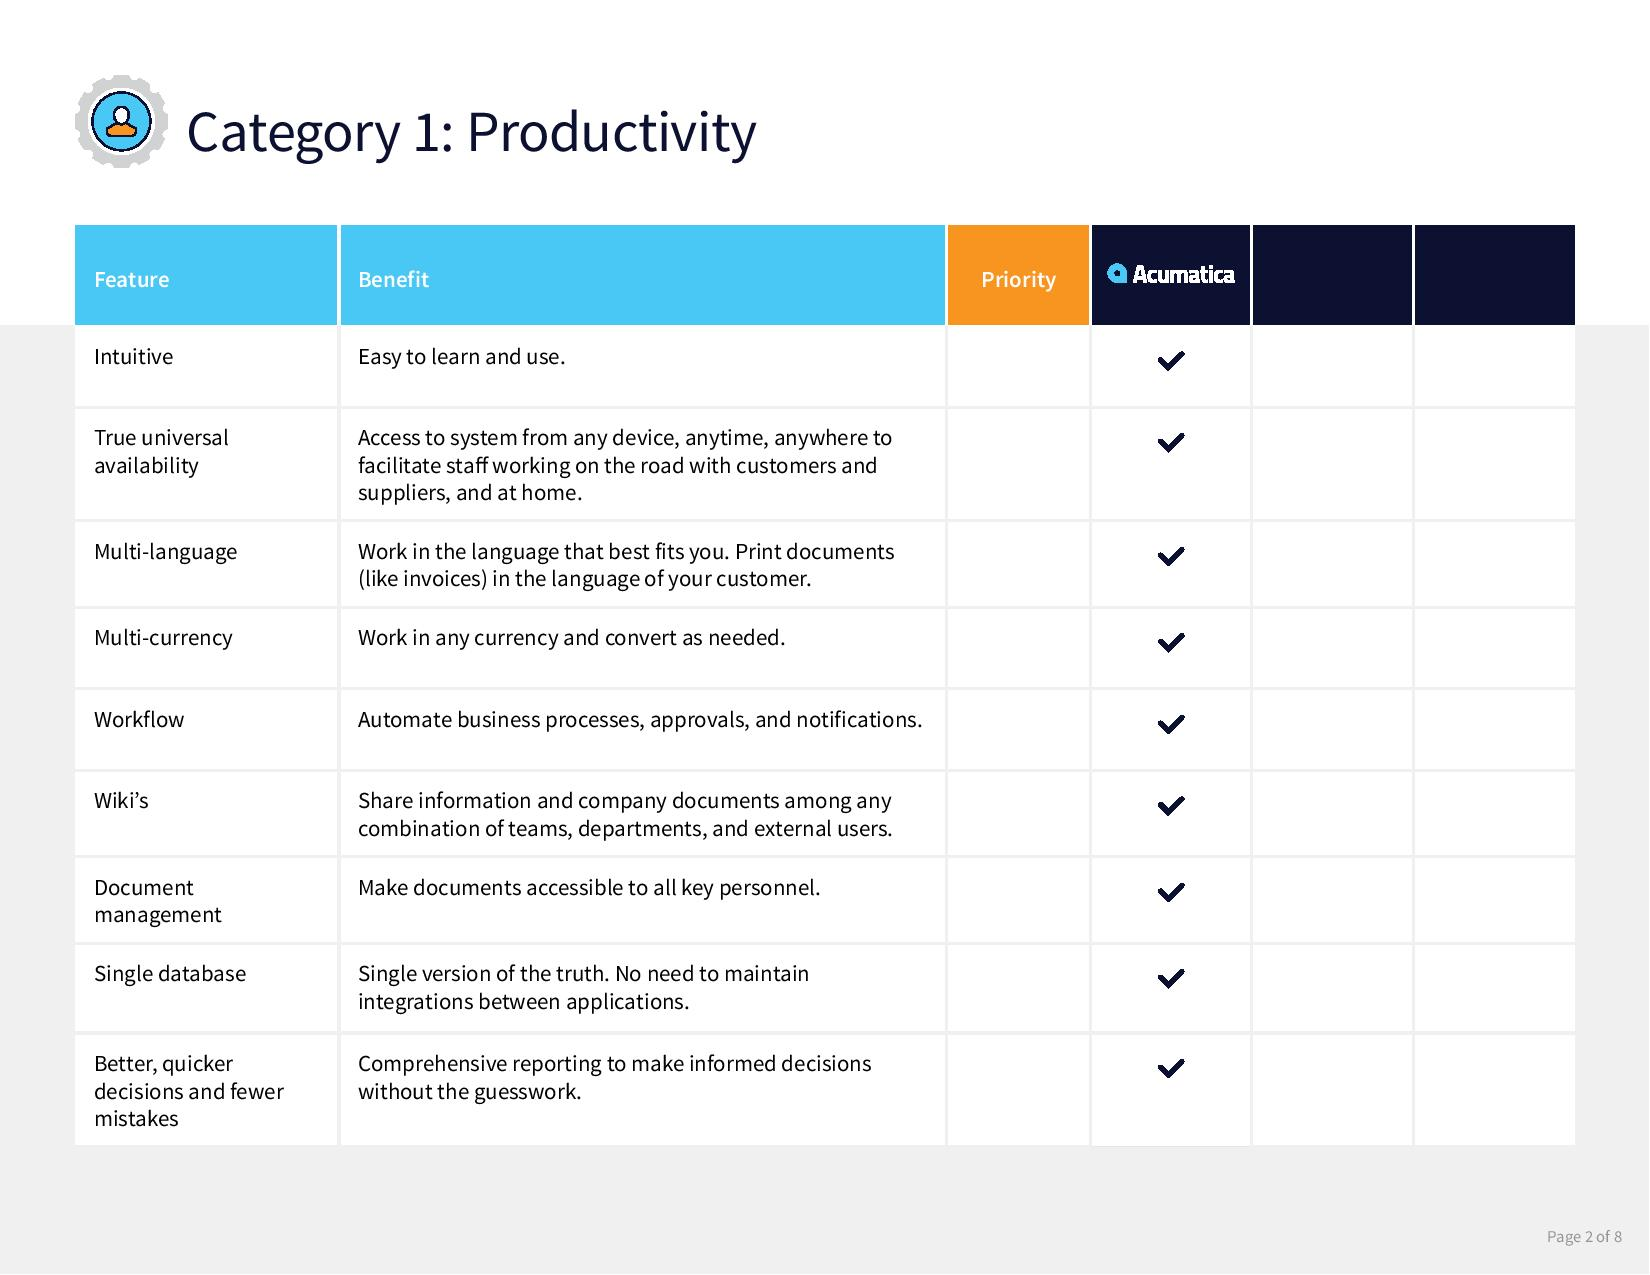 Find your ideal manufacturing management system with this free checklist., page 1